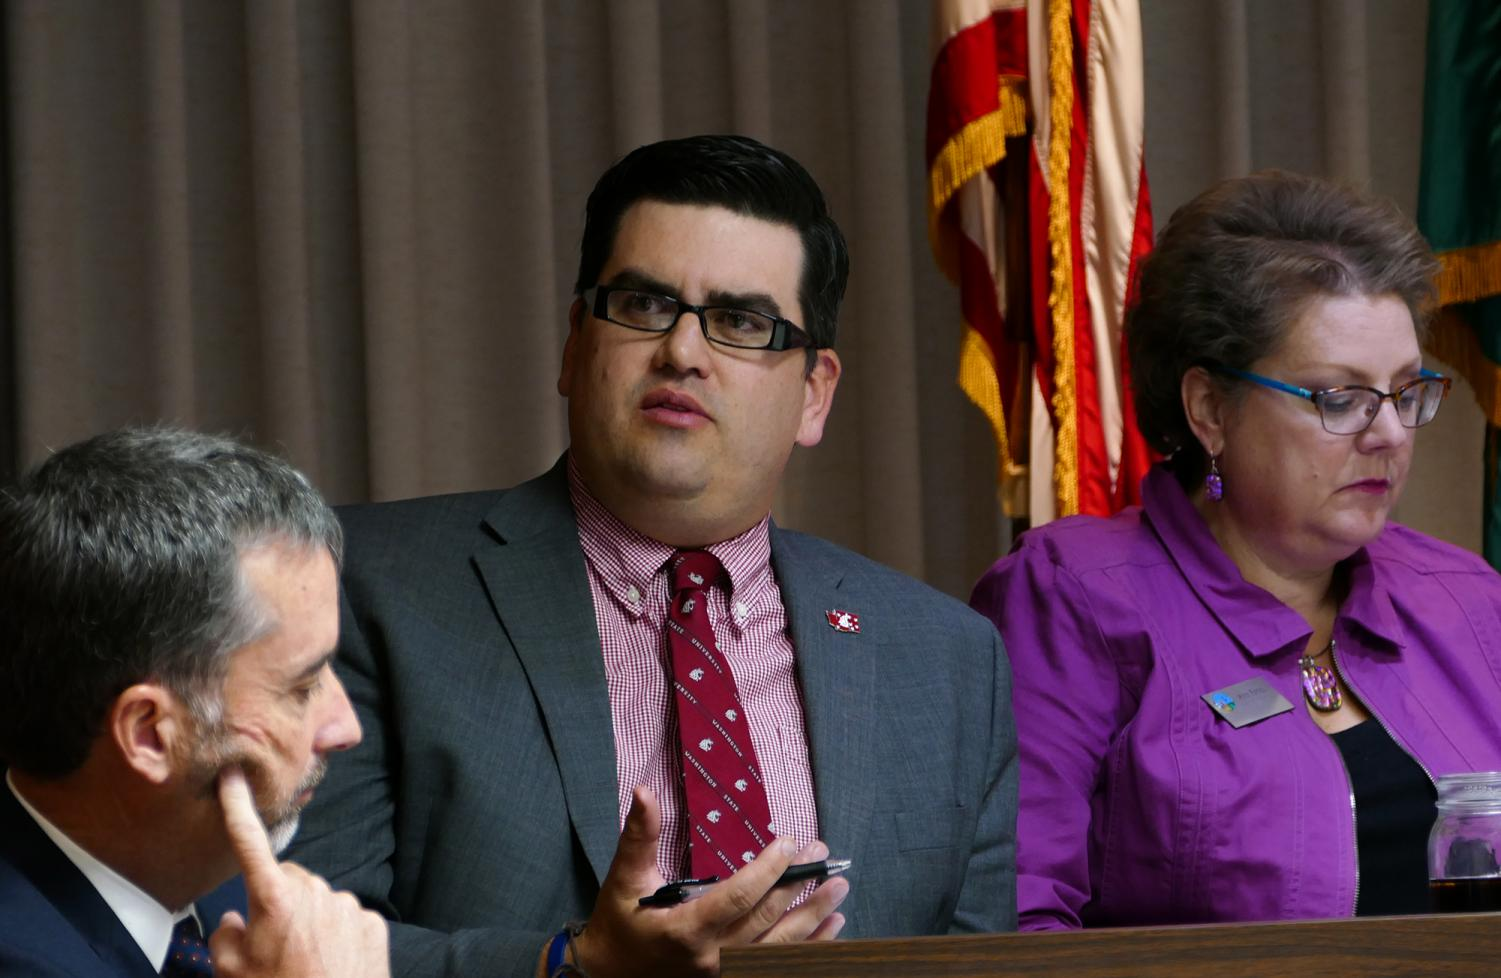 Councilmember Brandon Chapman, center, asks questions during the meeting Tuesday.